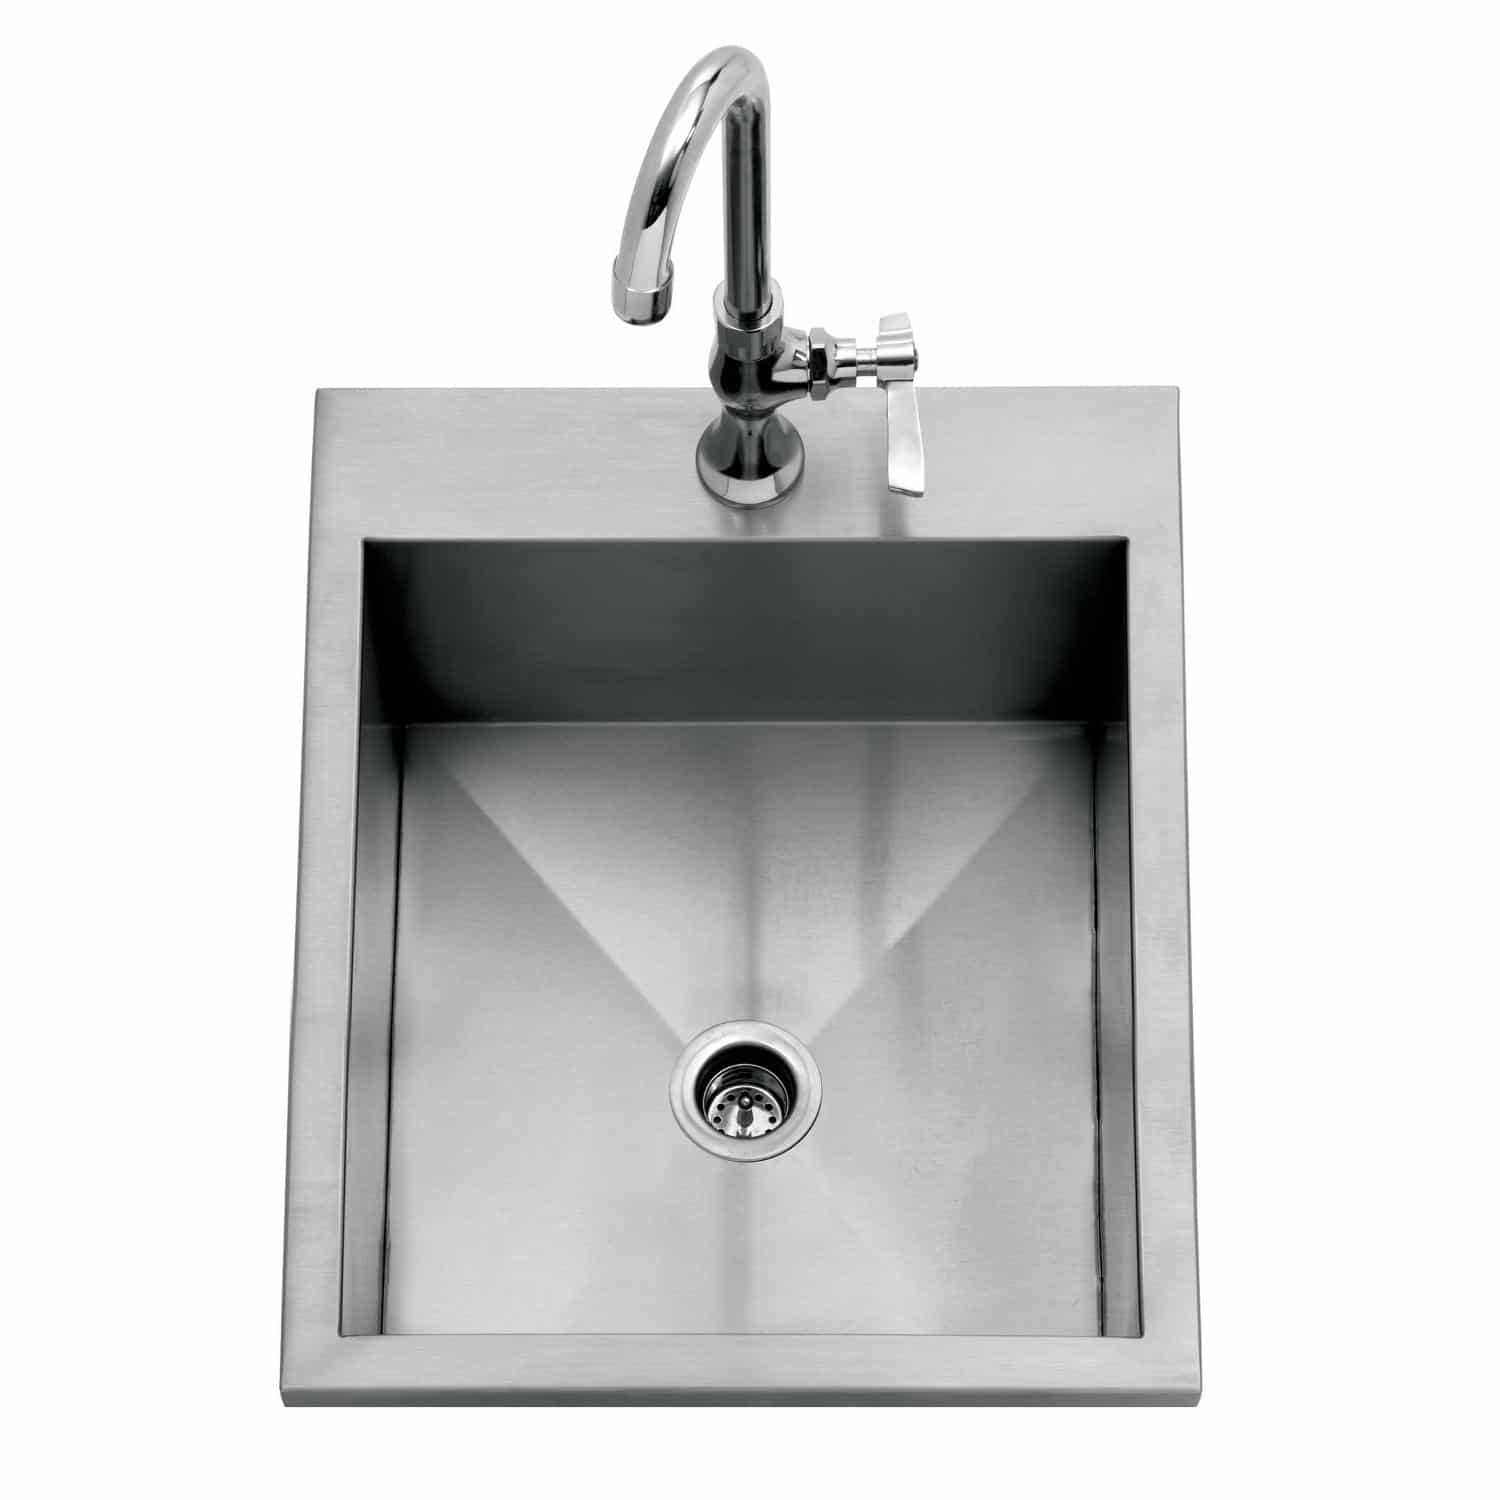 delta heat 15 inch drop in bar sink with faucet